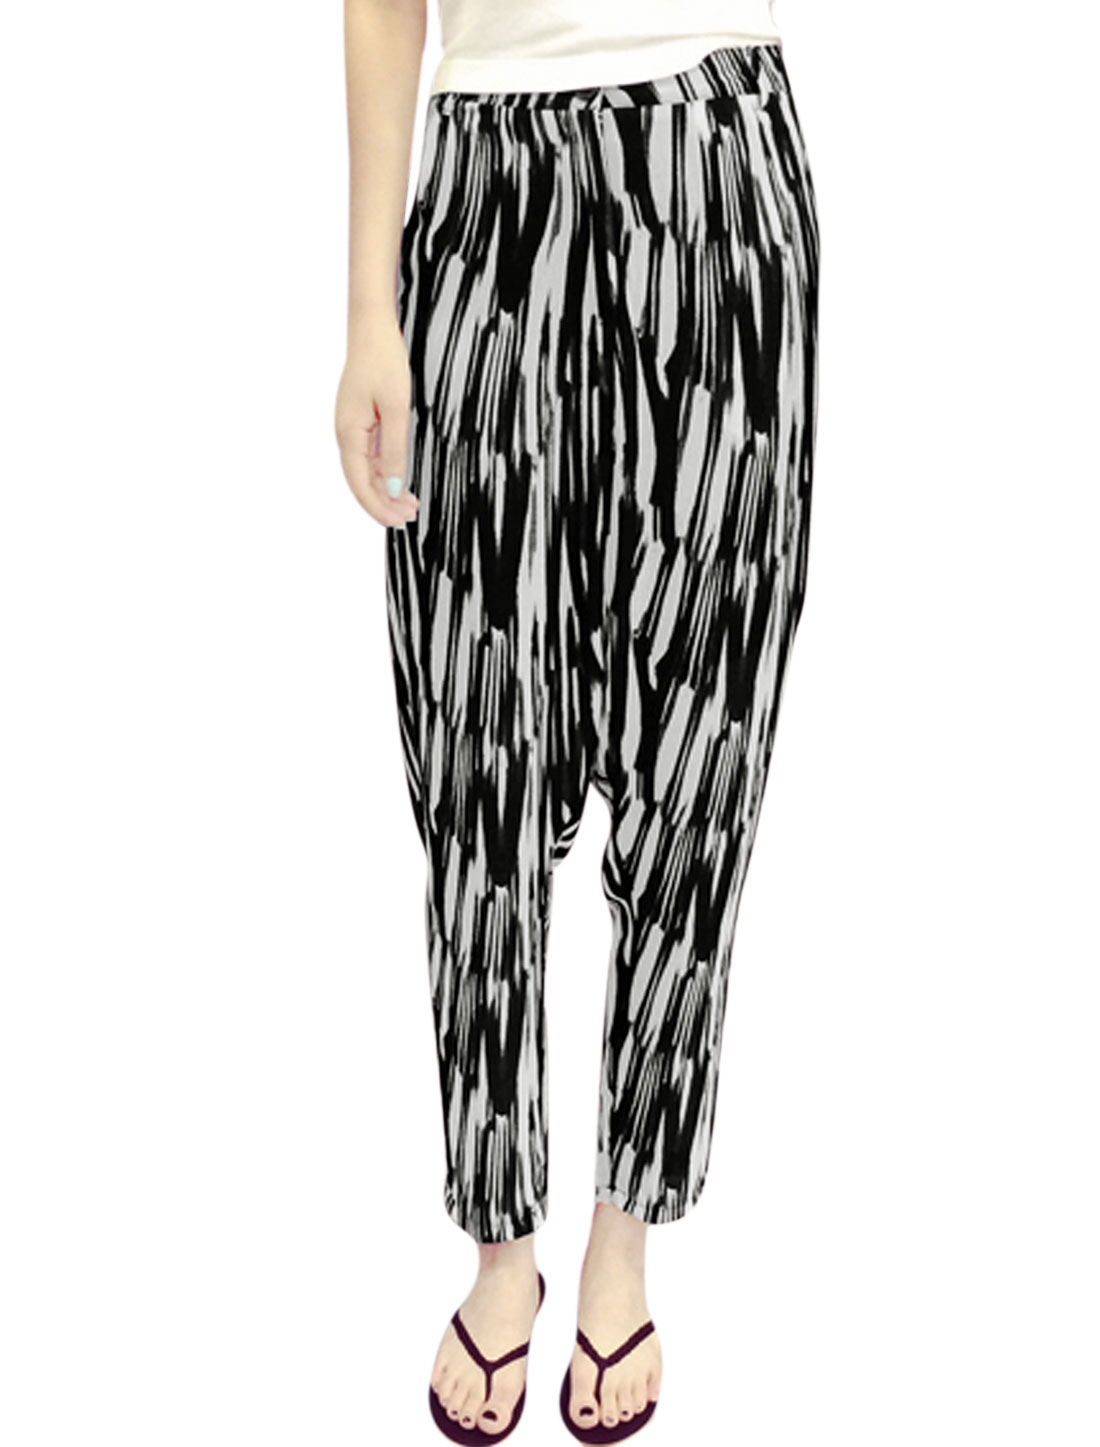 Lady Zip Fly Novelty Prints Harem Style Pants Black White S